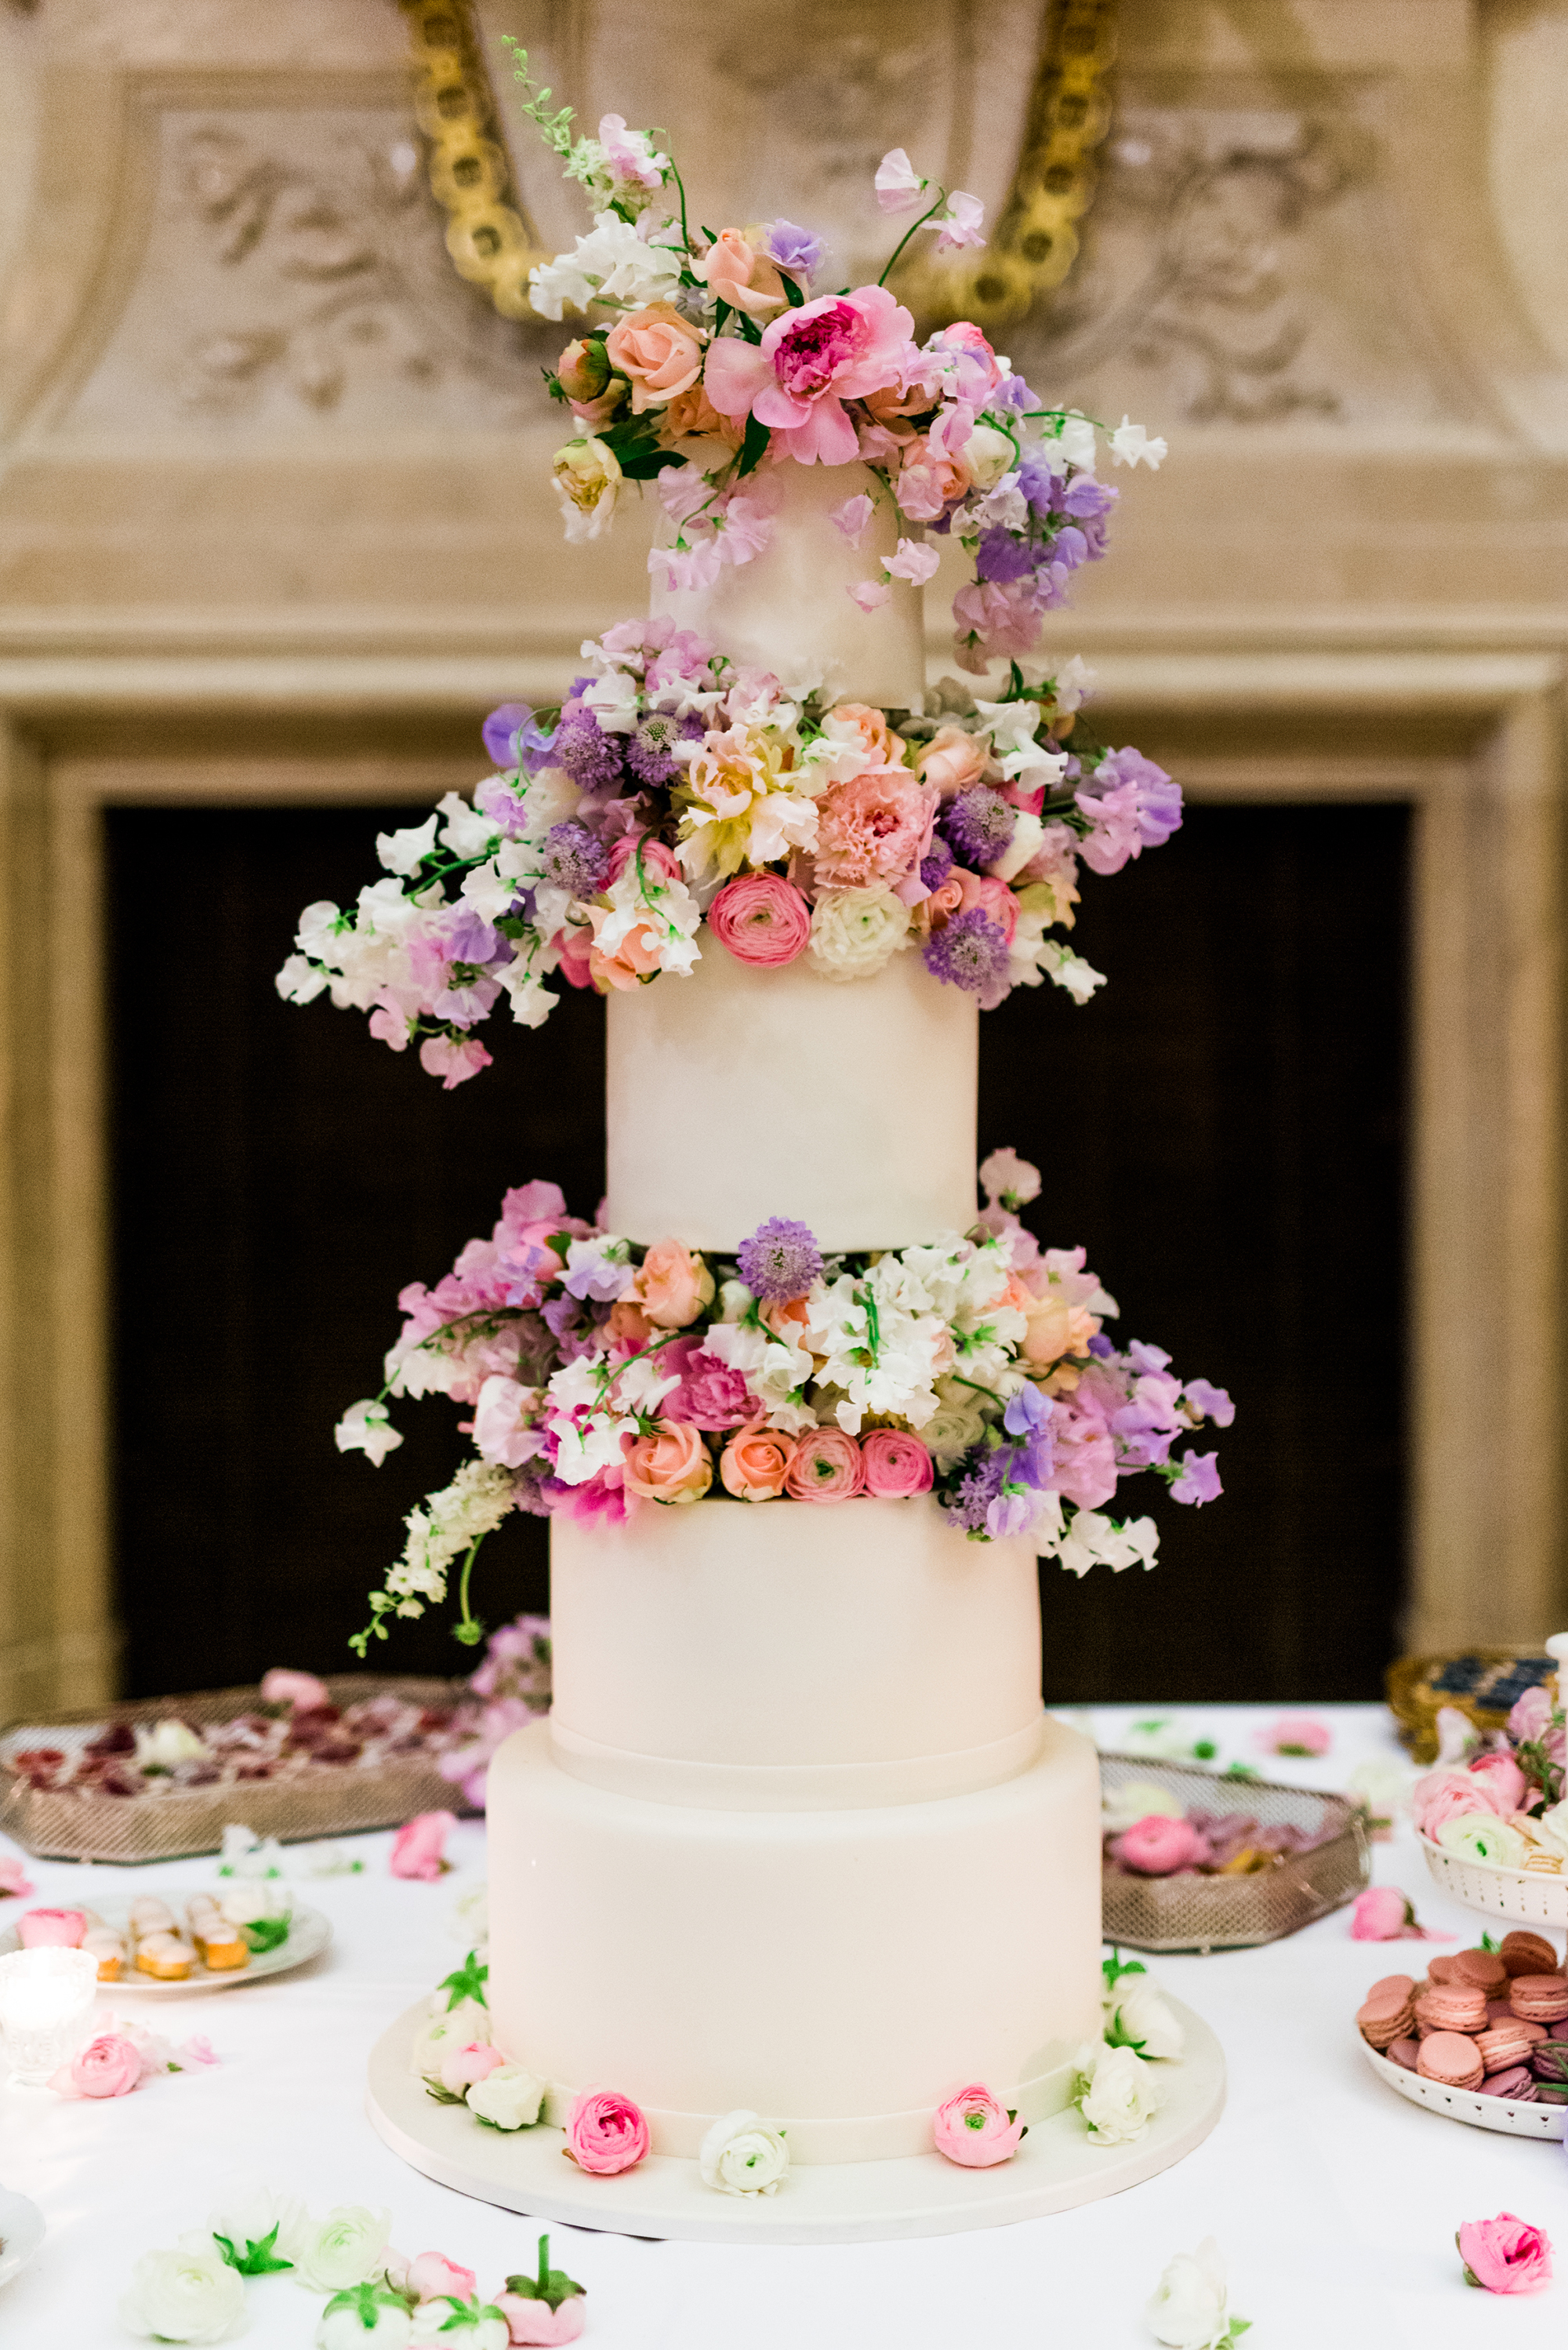 Trending Now: Wedding Cakes with Floral Tiers